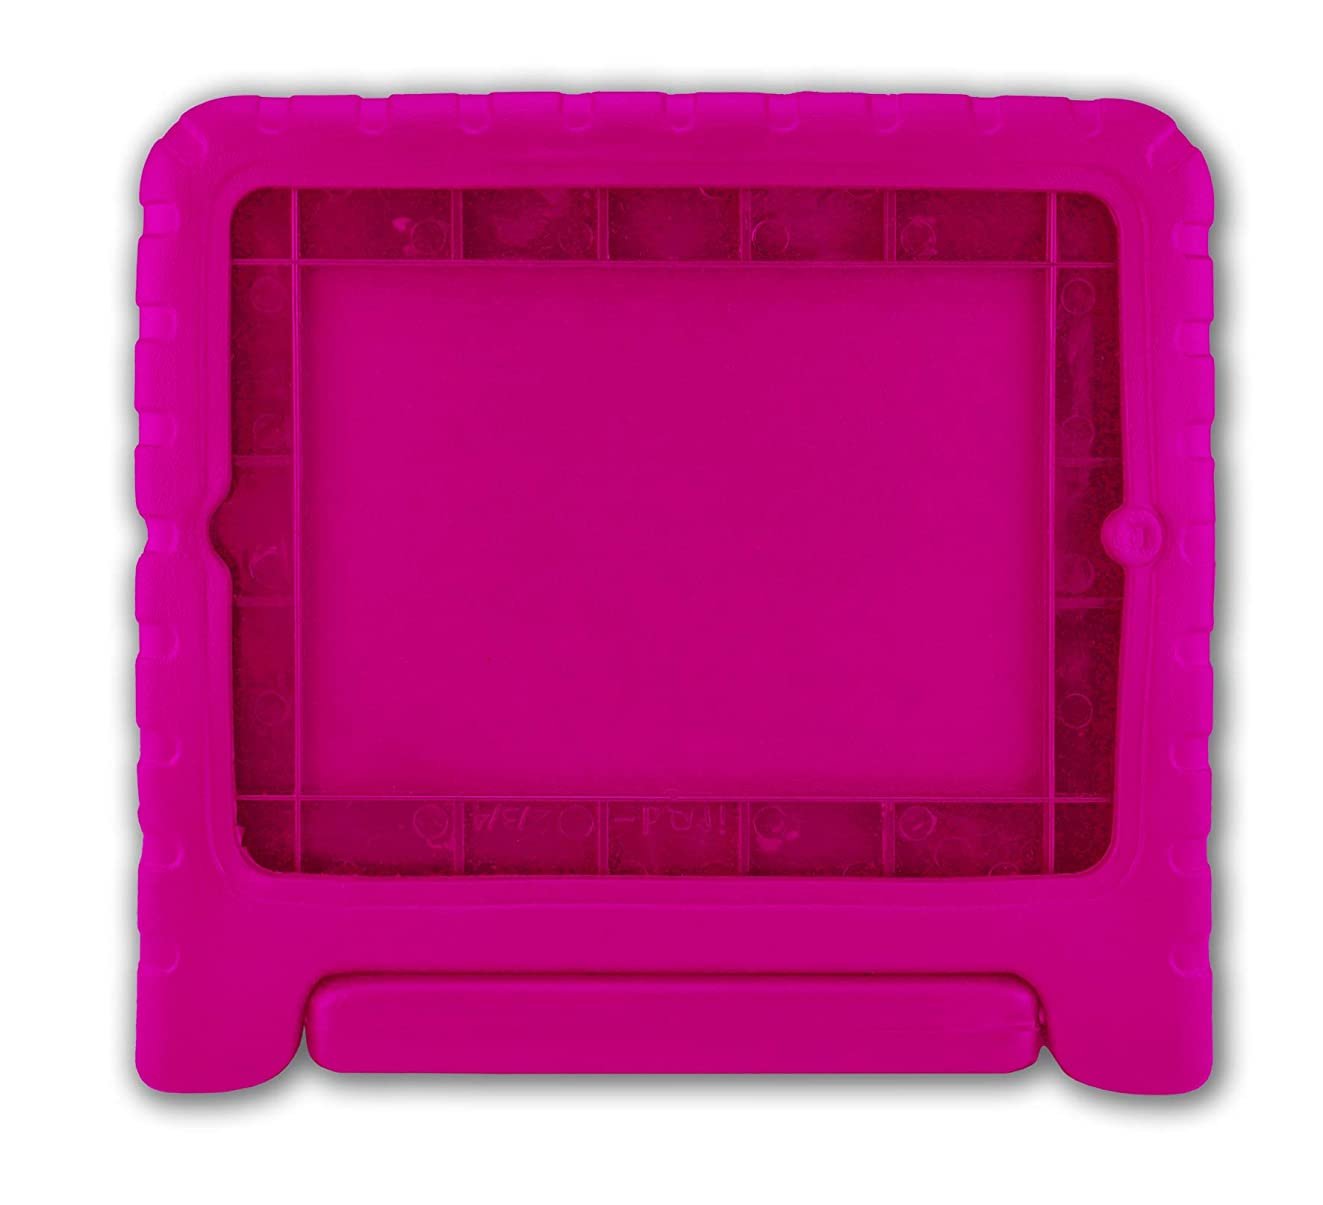 XtremPro iPad Protective Tablet Case Cover for iPad 2, iPad 3, iPad 4 - Black, Pink, Blue (Pink)